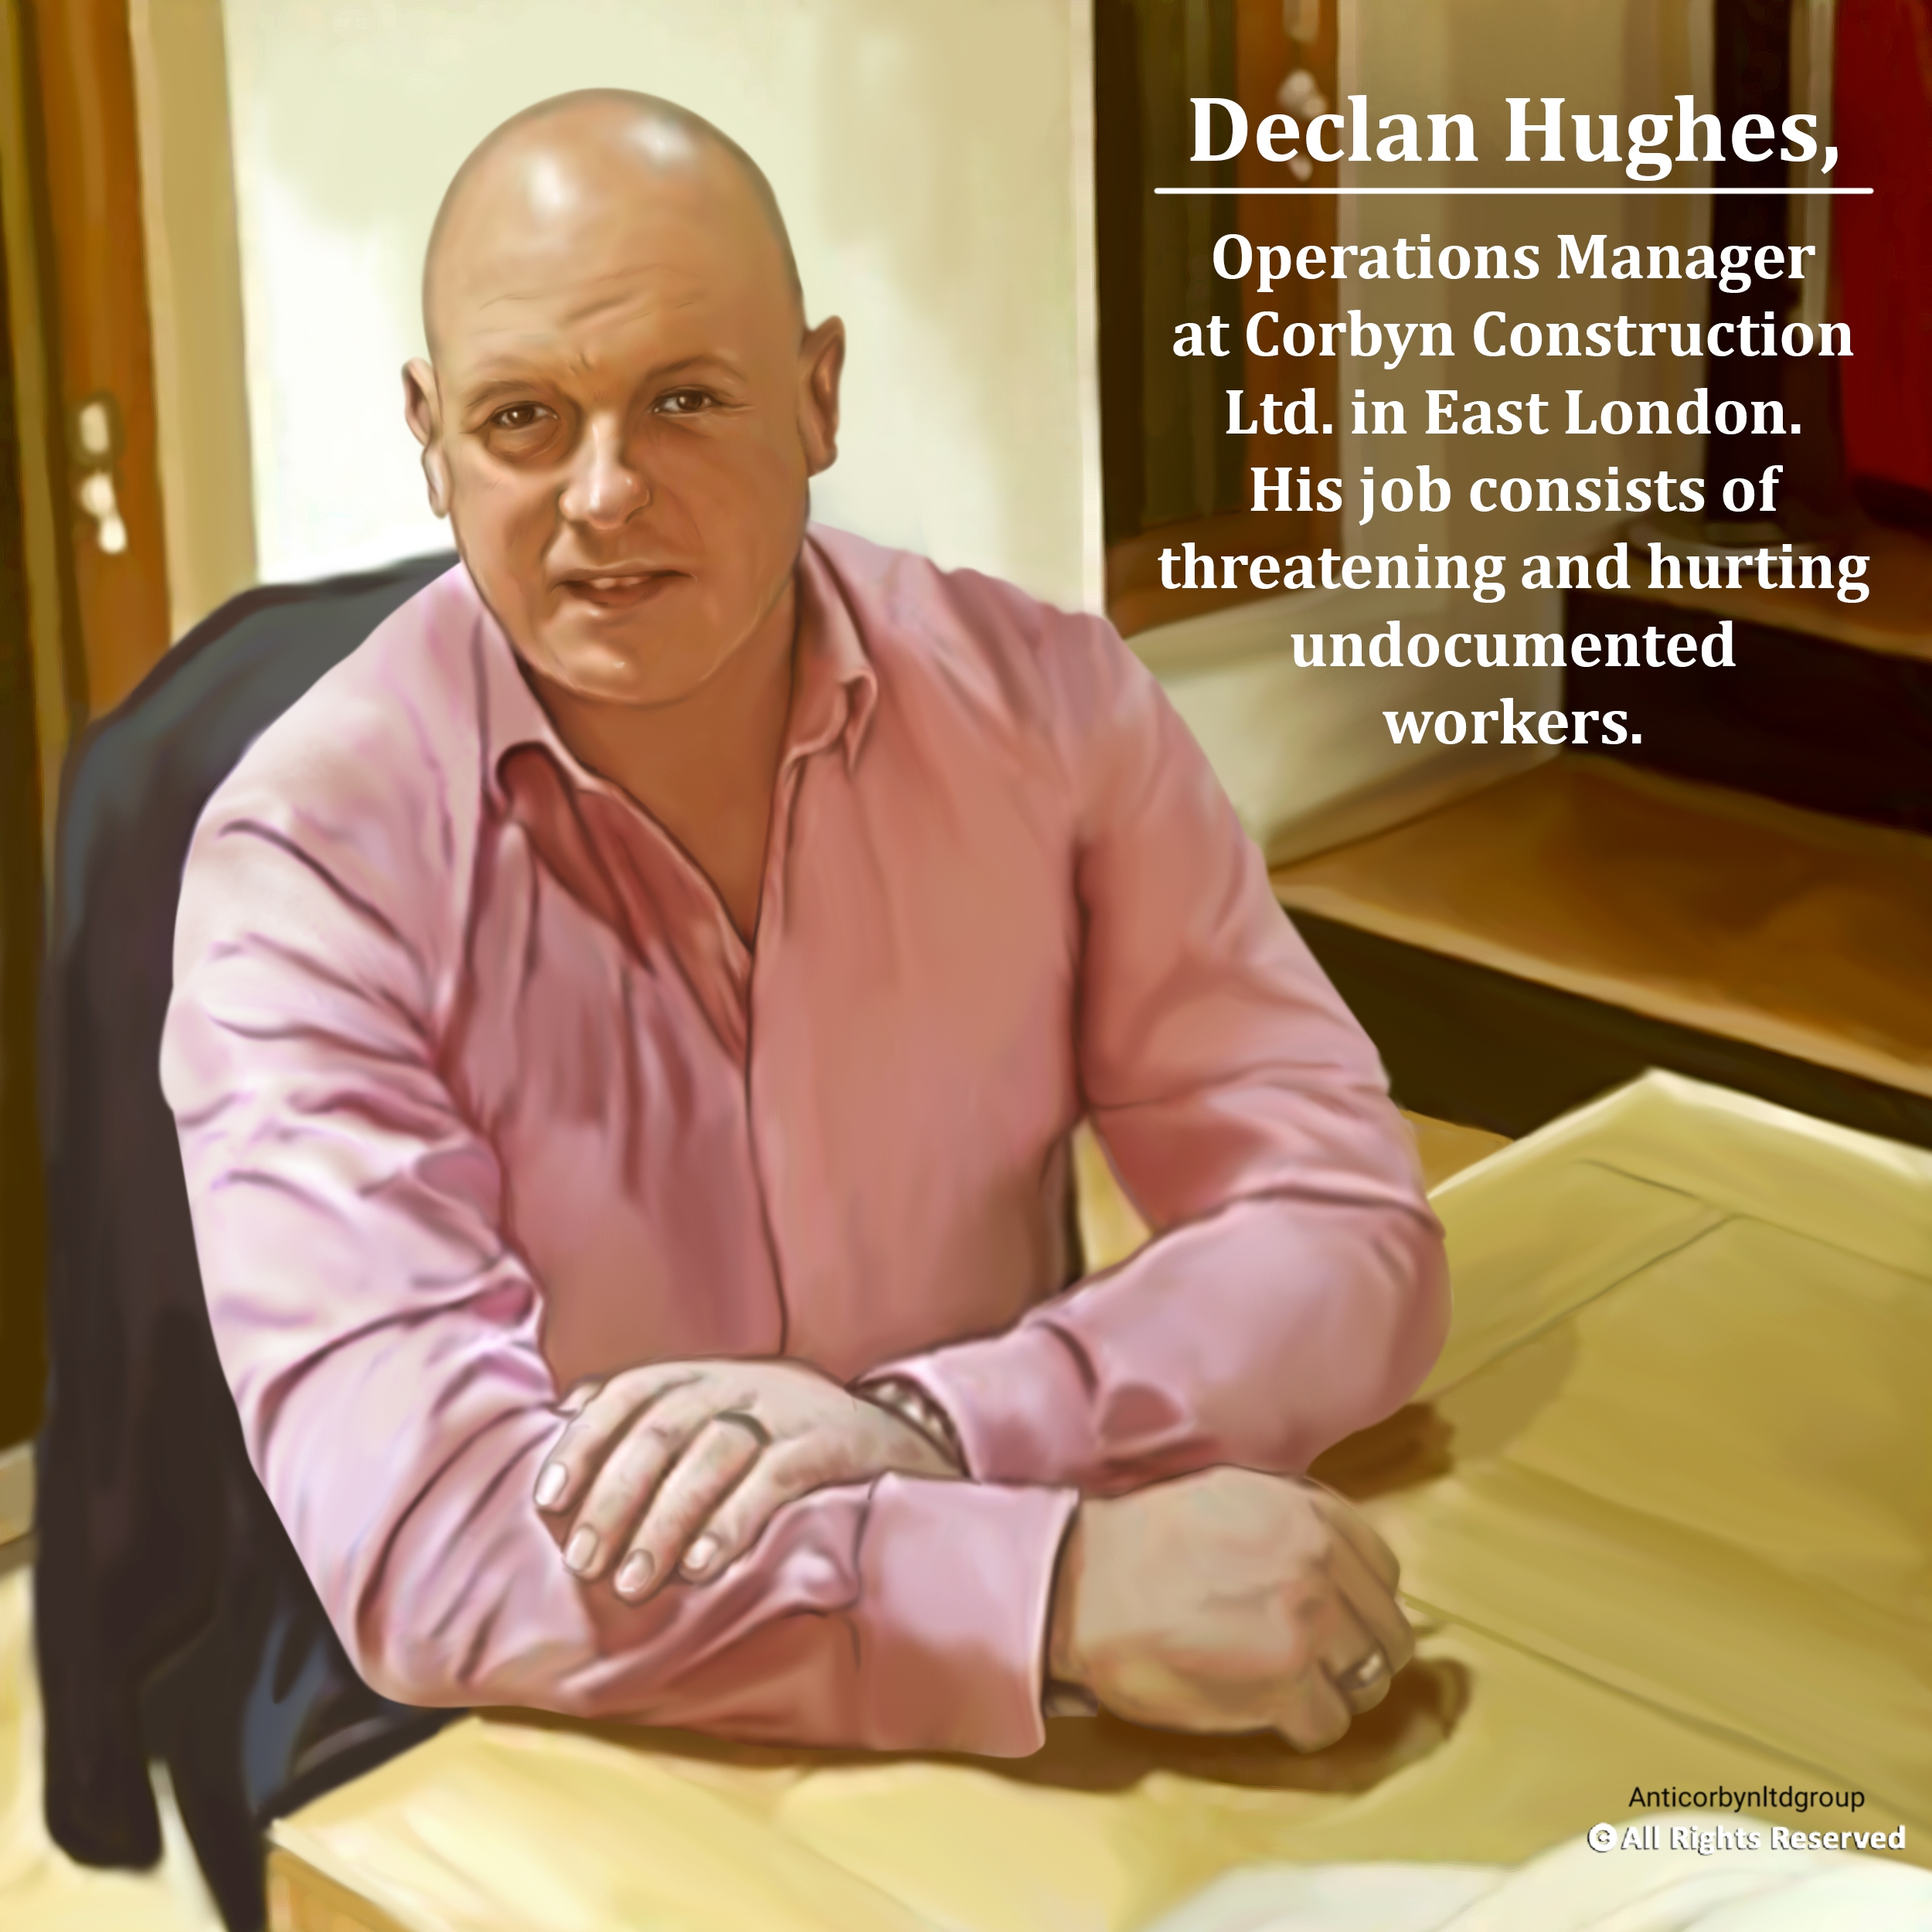 Declan is accused of ordering Corbyn's guard dog to attack an employee. He drove himself the victim to the hospital and ask the mauled employee to tell the hospital that he got mauled by a straight dog. Then Mr Hughes threatened the employee of retialiation if this one was filing a lawsuit against Corbyn Construction LTD.